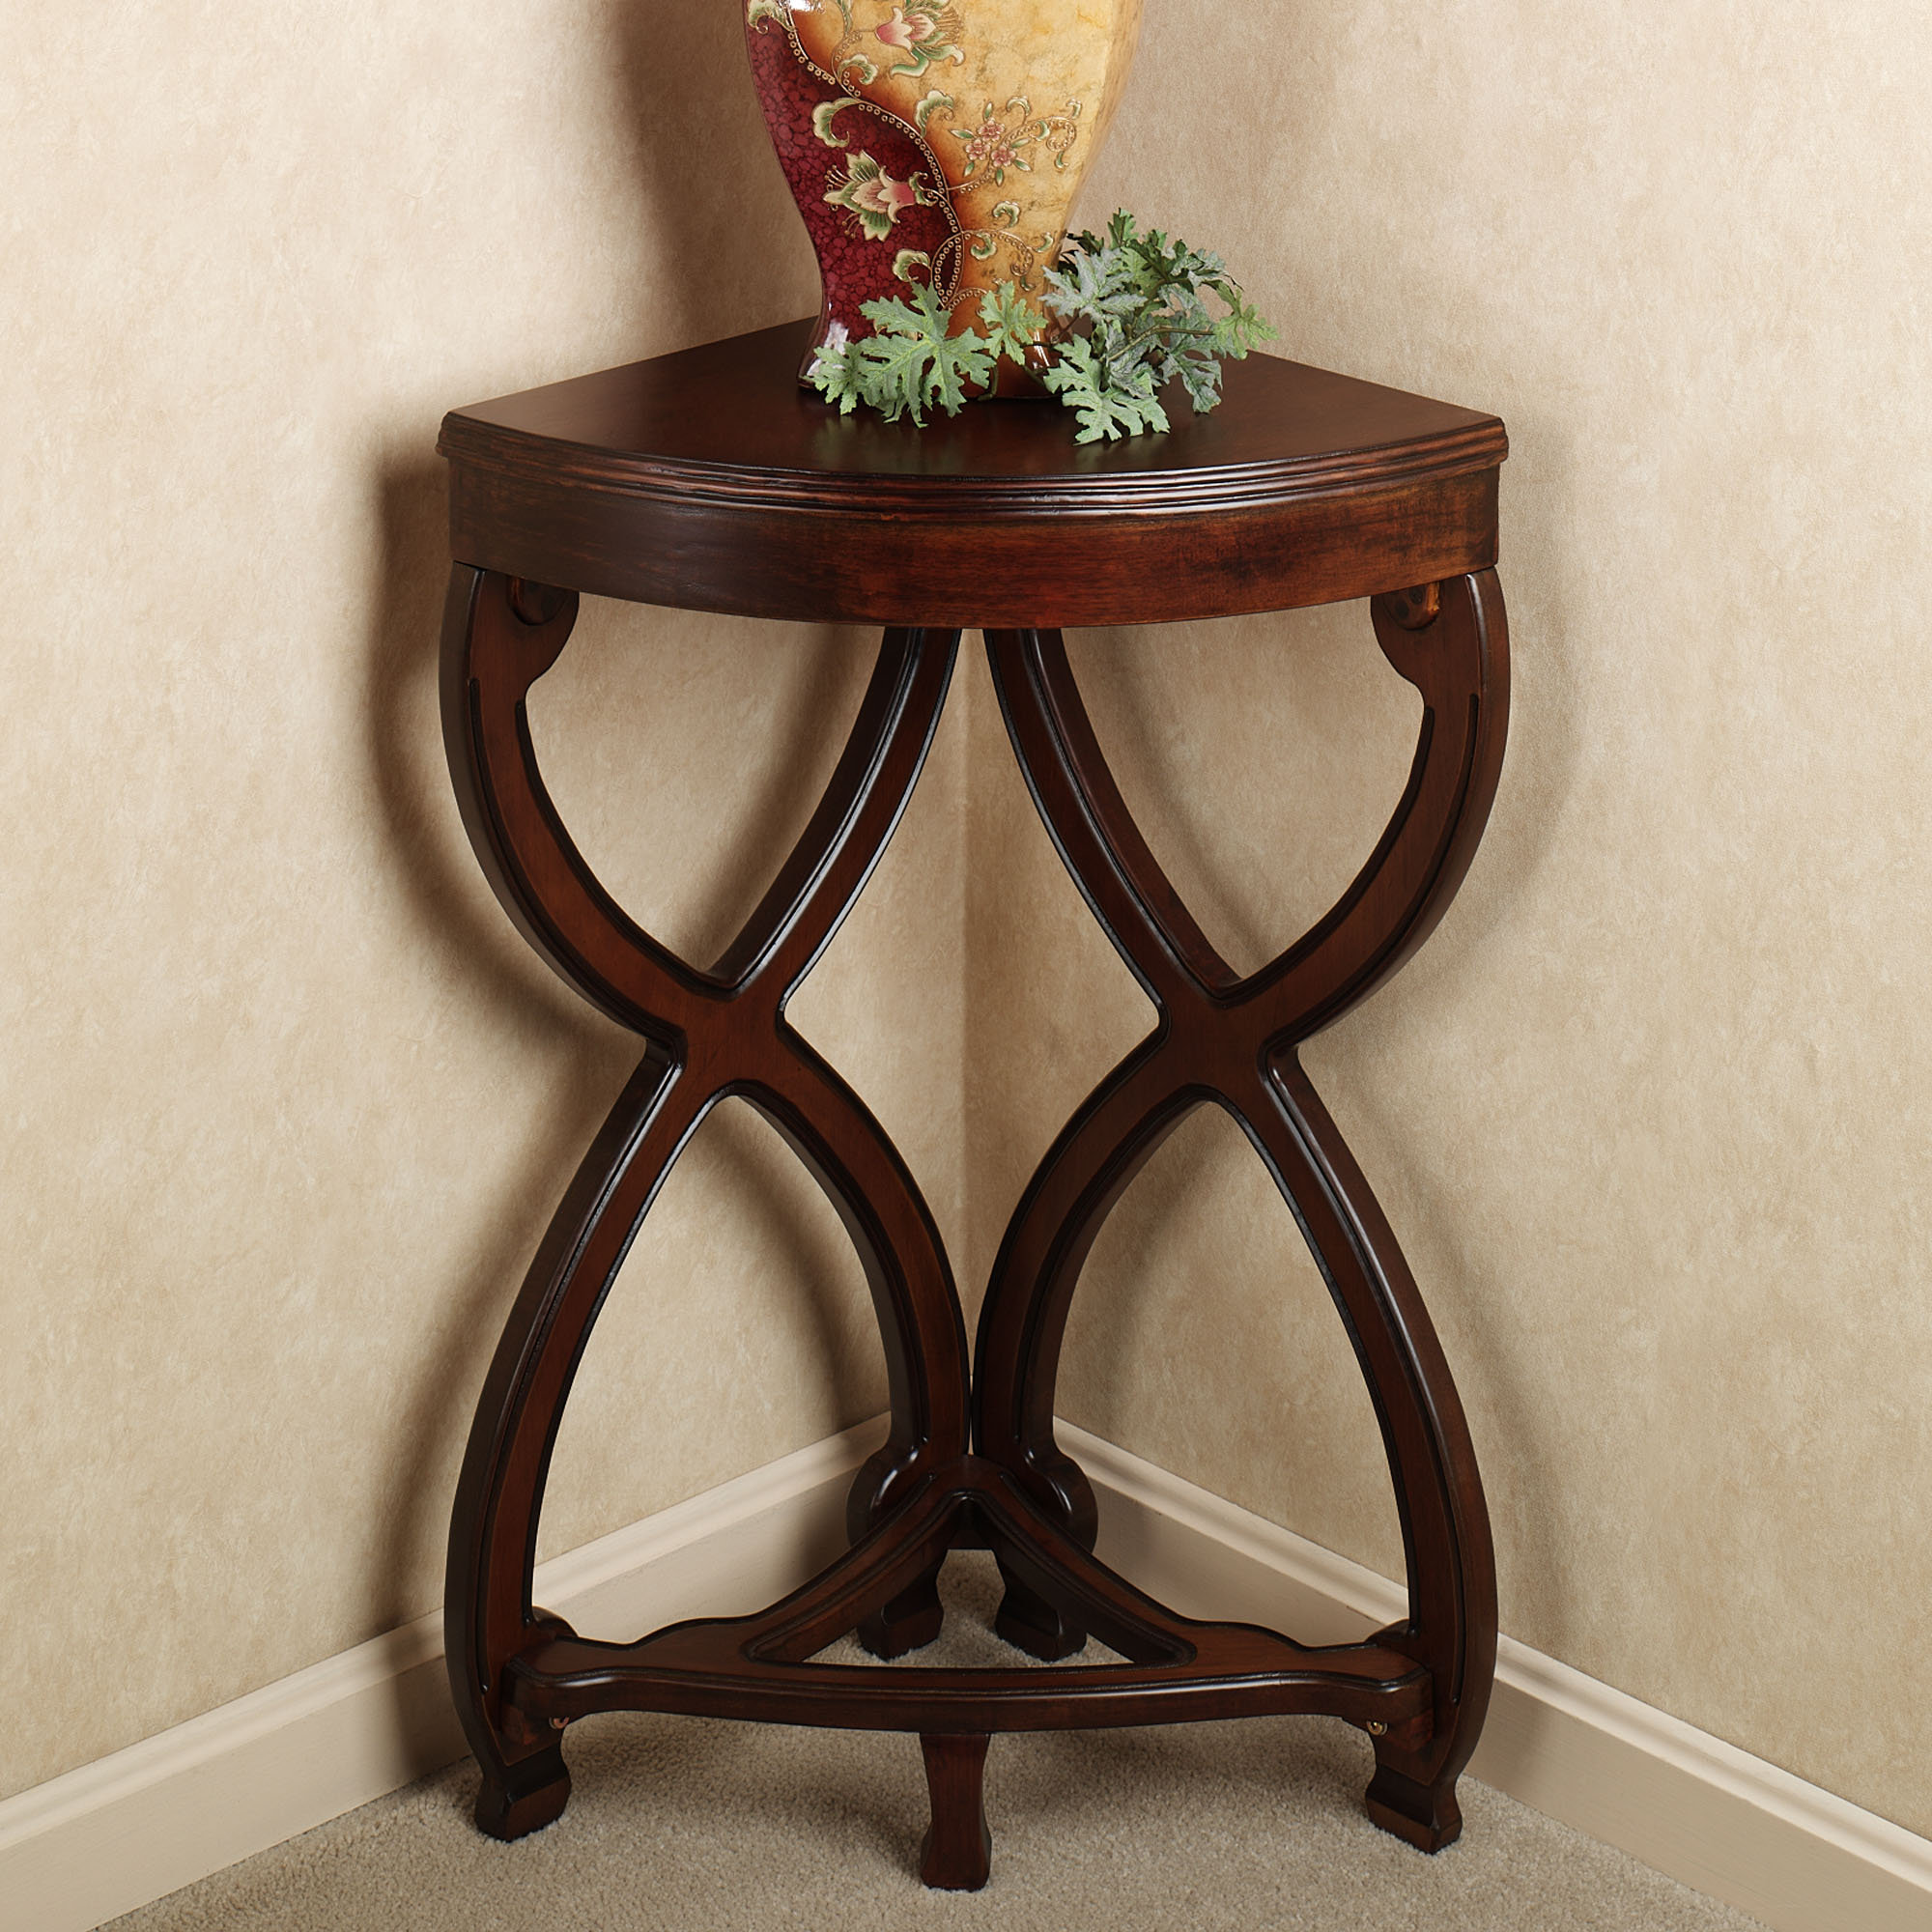 unique corner accent table for dining room ninan black small wooden side with baskets iron frame queen ginger jar lamps off white distressed end tables solid wood coffee